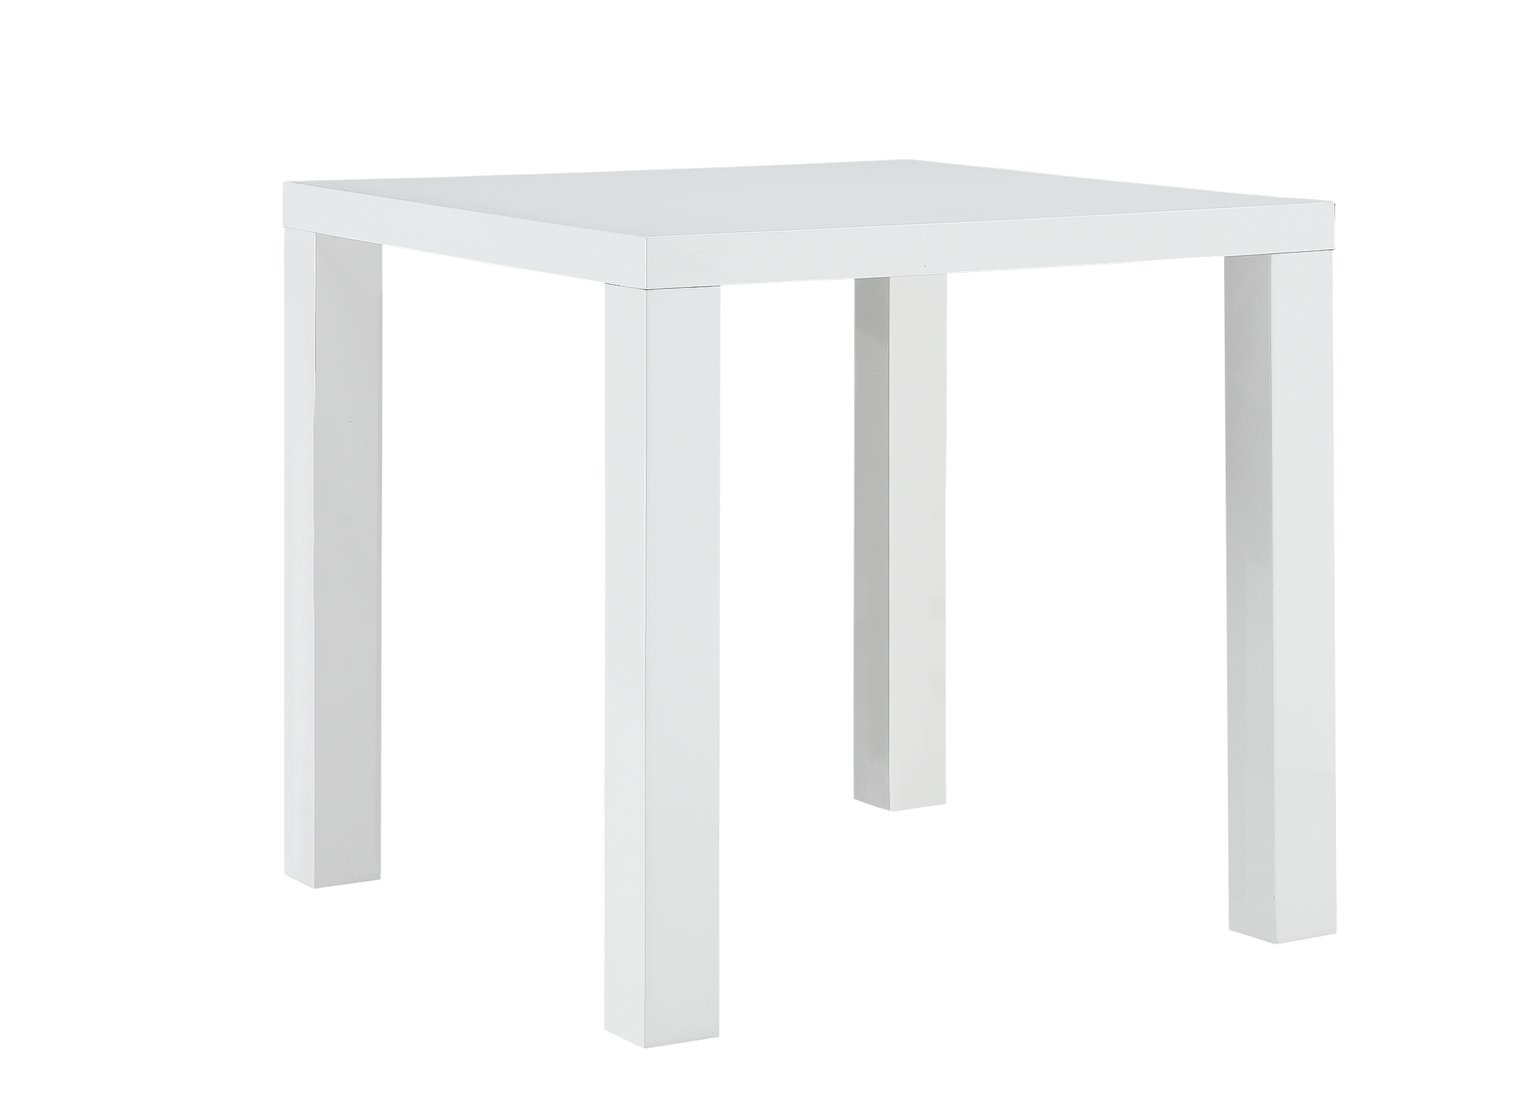 Hygena Lyssa 2 Seater Dining Table - White Gloss